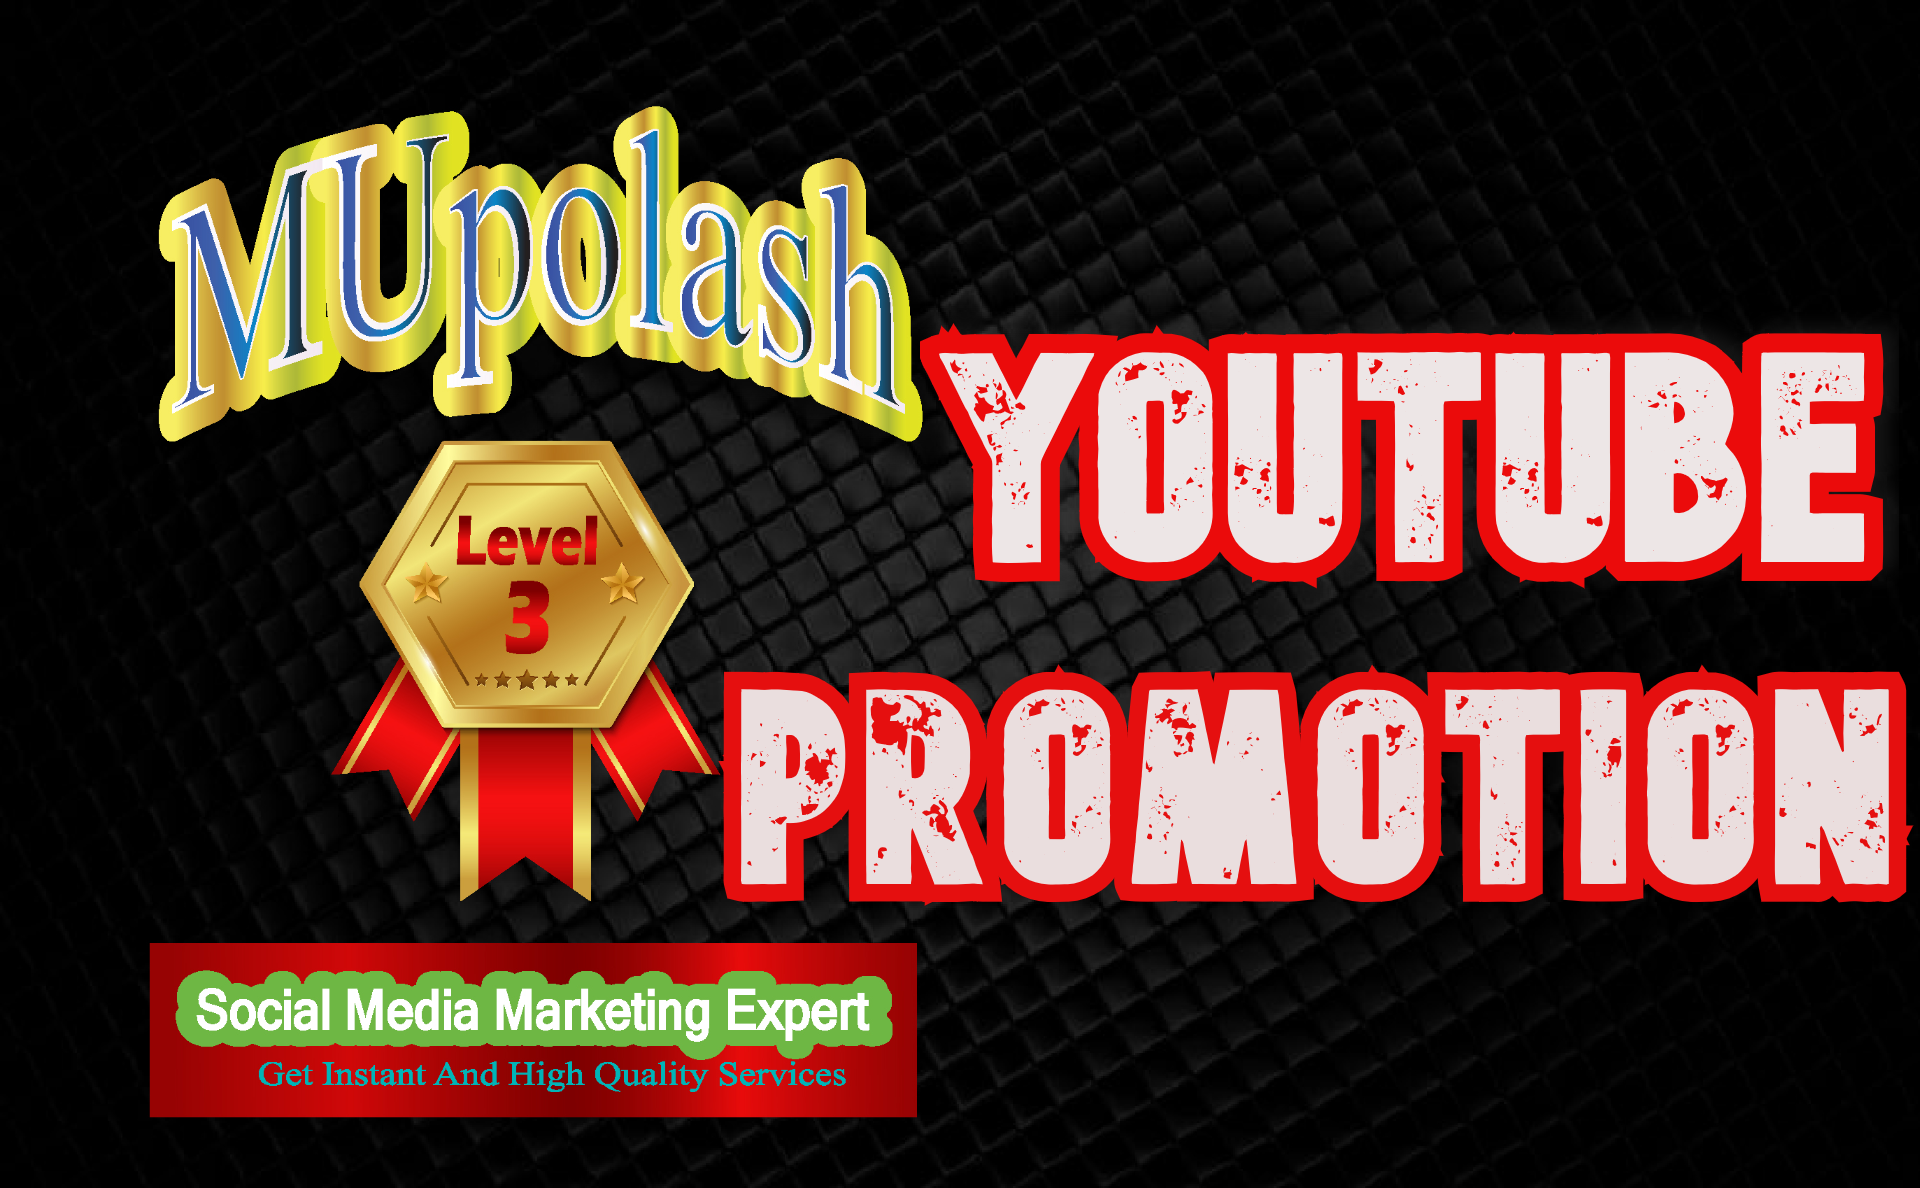 Get instantly video promotion by real peple by manual watch in a organic way.